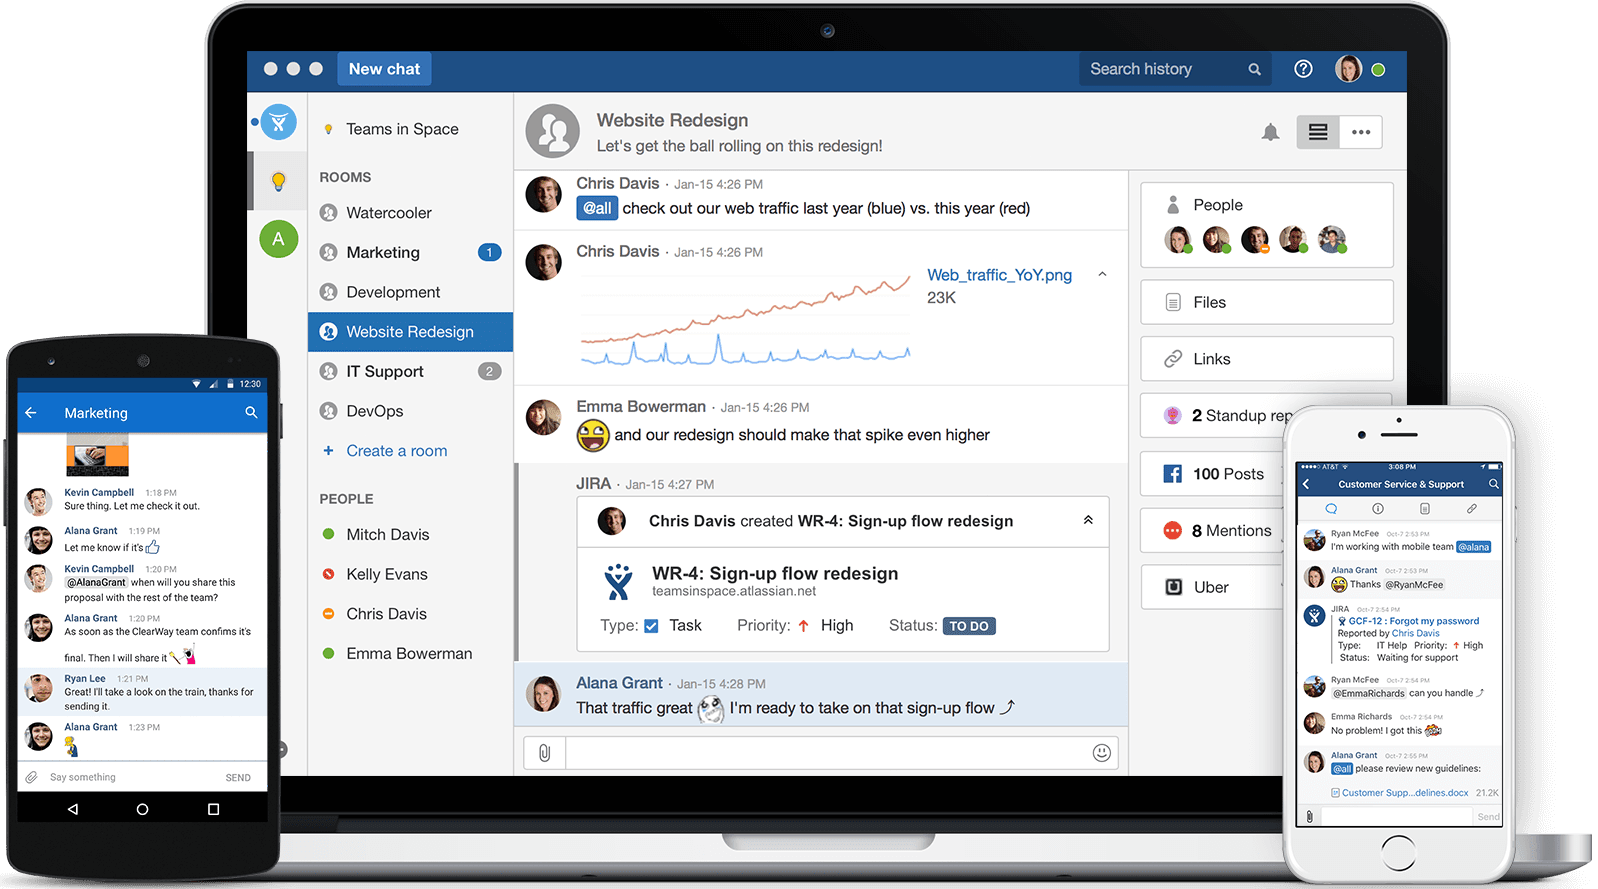 HipChat - Download